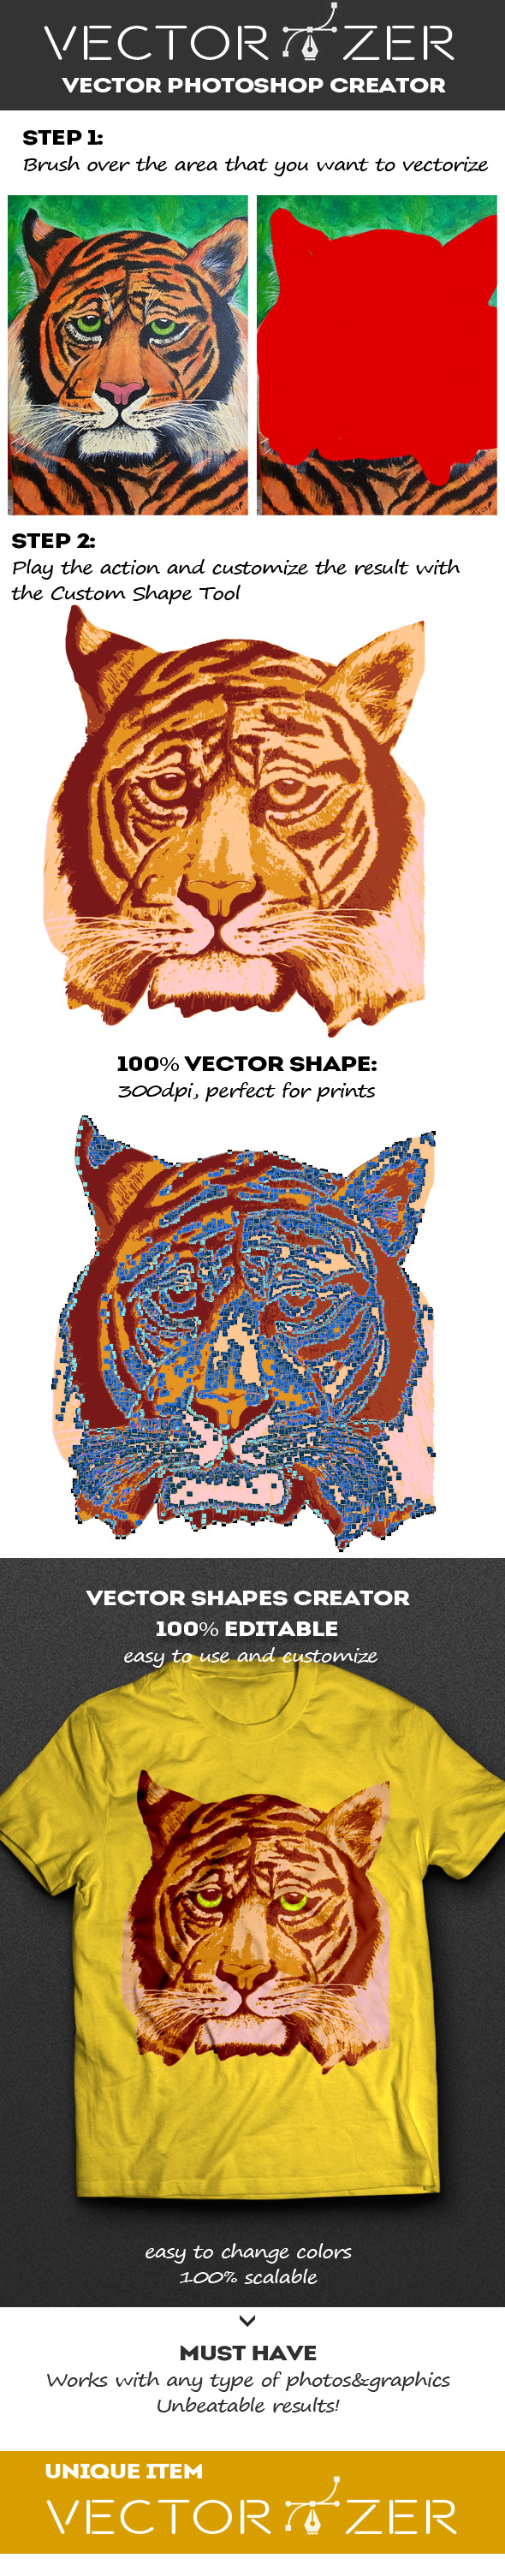 GraphicRiver Vectorizer Vector Photoshop Creator 10928878